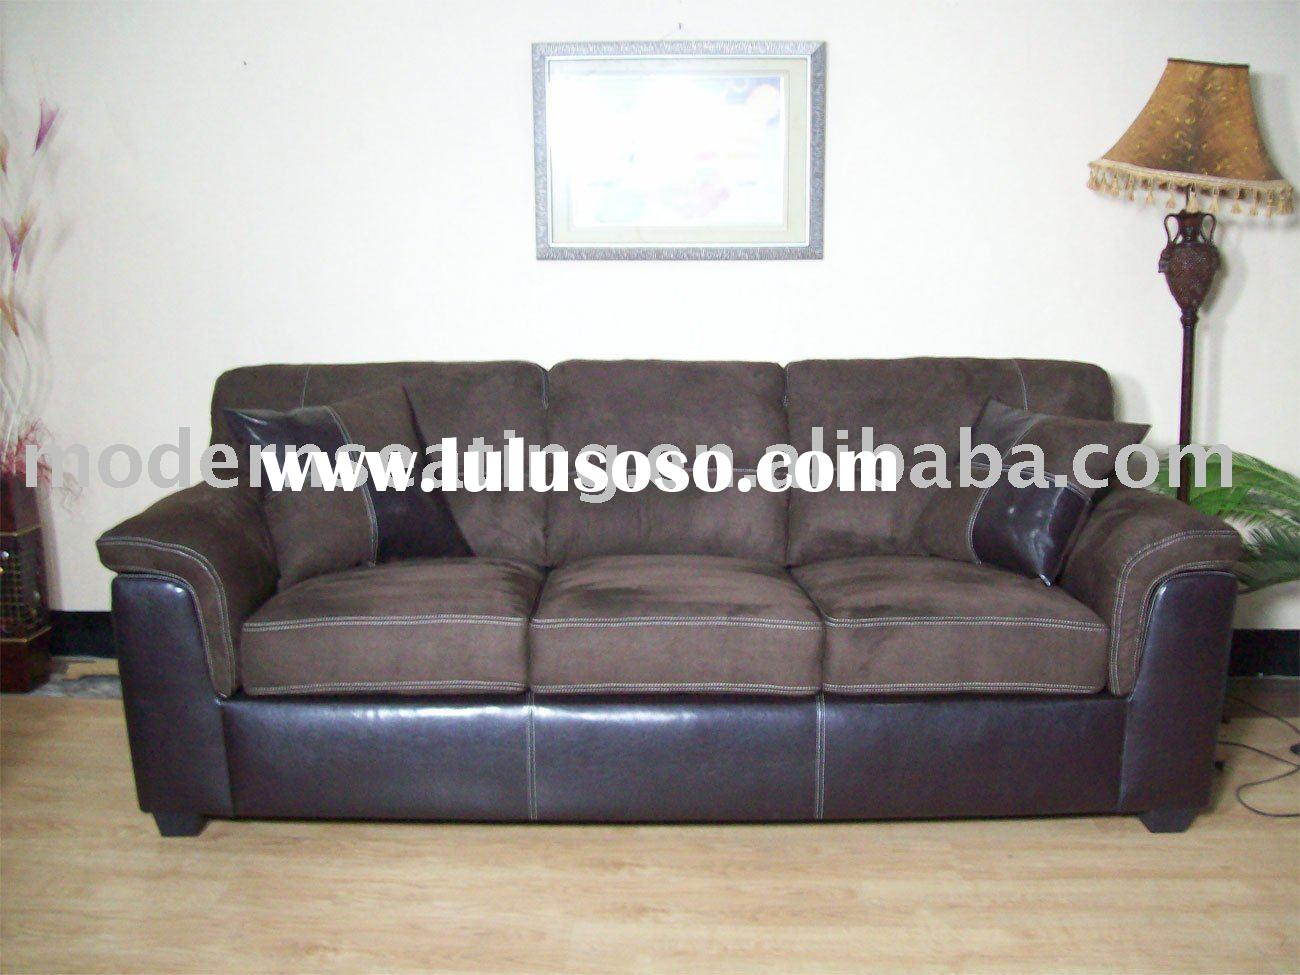 Synthetic Leather For Sofa For Sale Price China